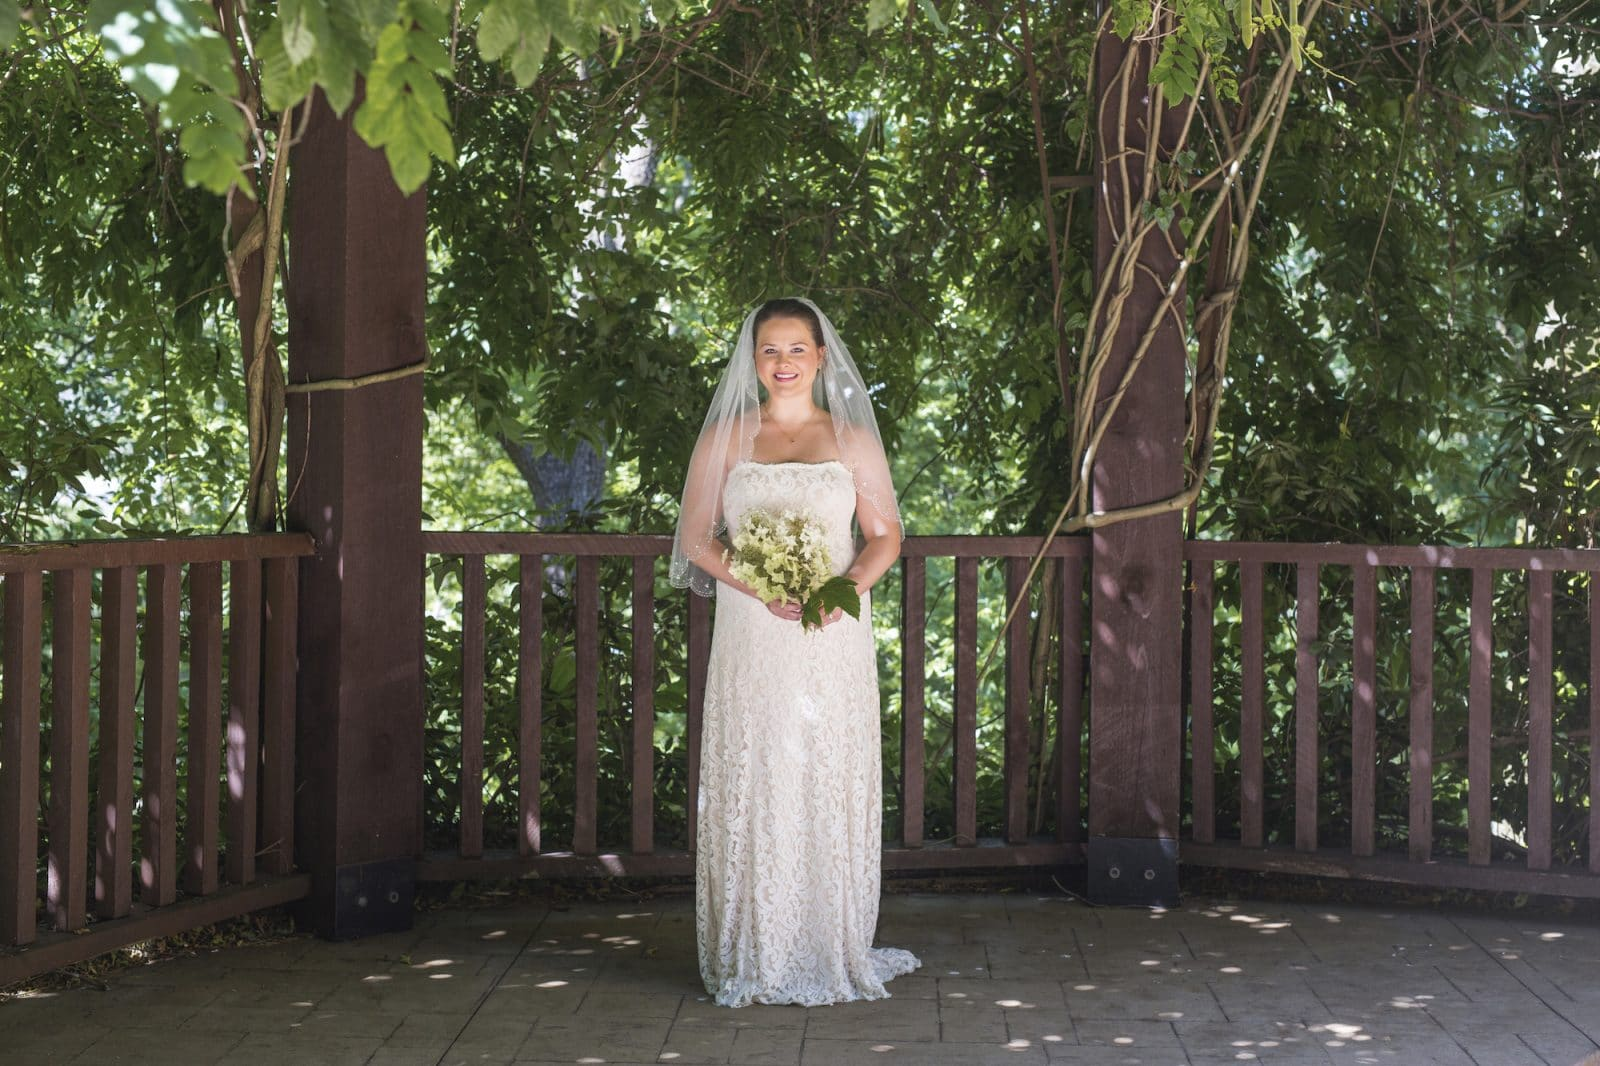 Bride at Outdoor Wedding in Pigeon Forge